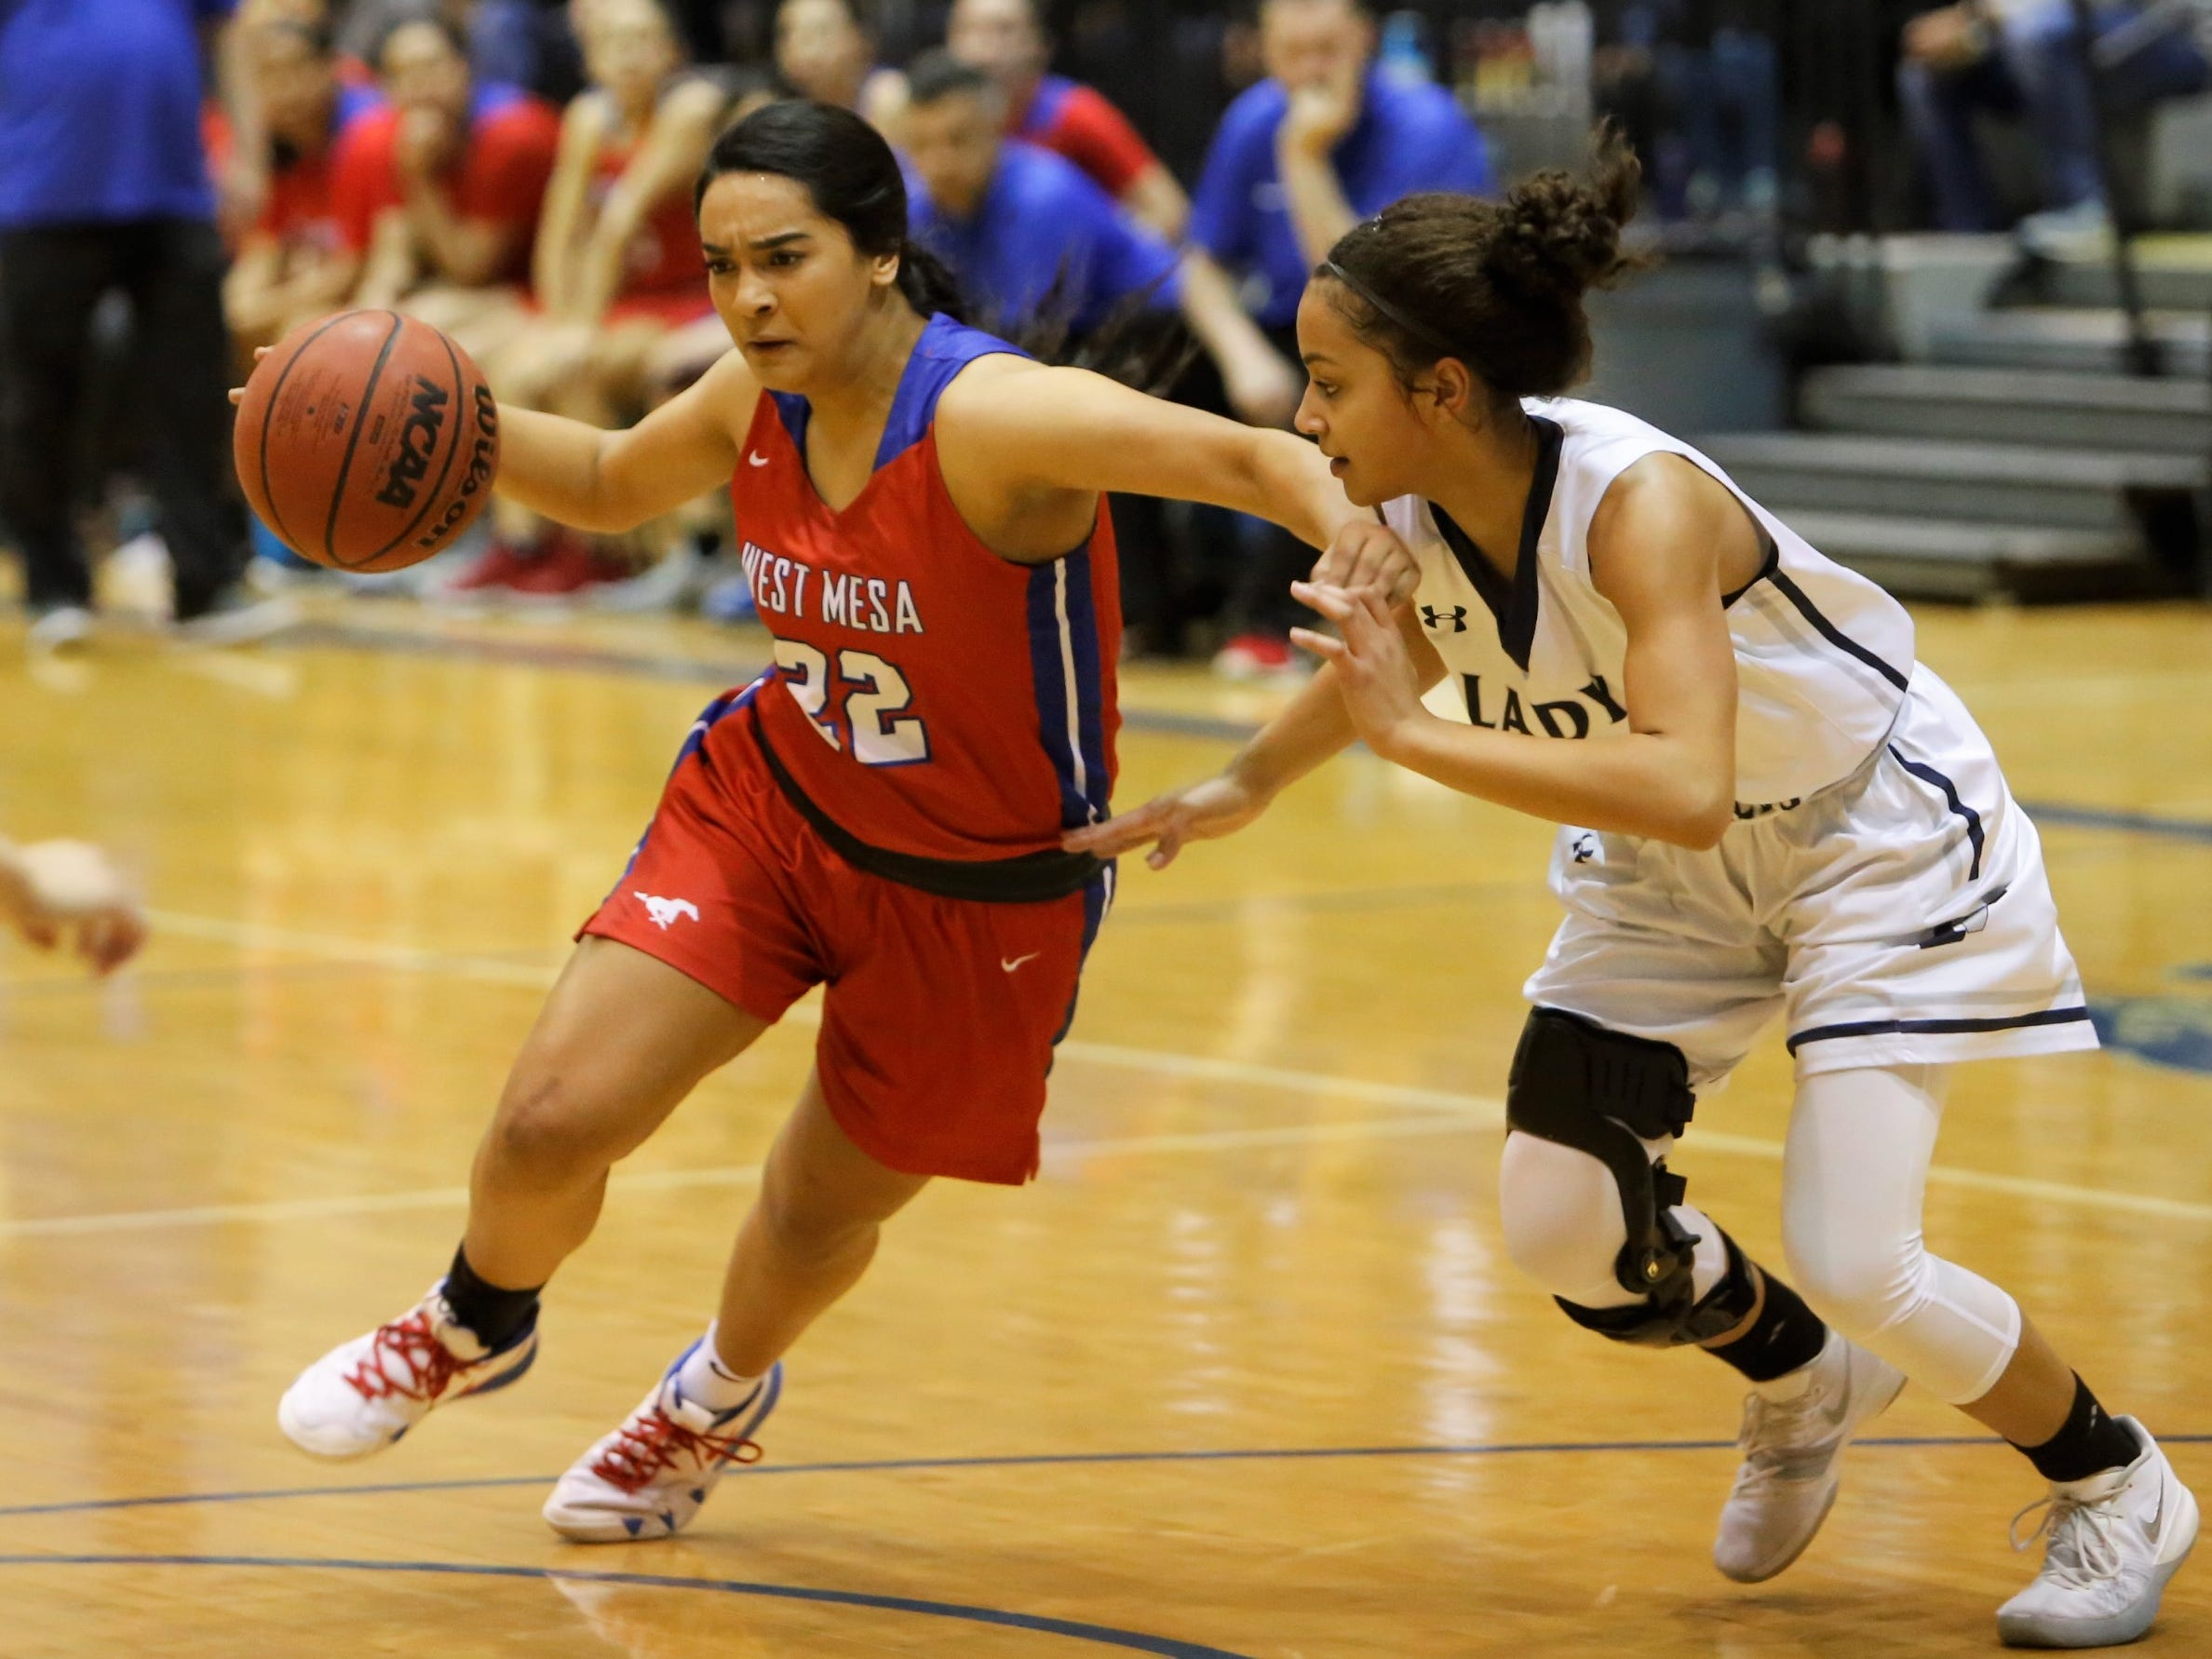 West Mesa's Cece Barela attacks the basket against Piedra Vista's Elaina Watson during Saturday's District 2-5A tournament championship game at Jerry A. Conner Fieldhouse in Farmington.